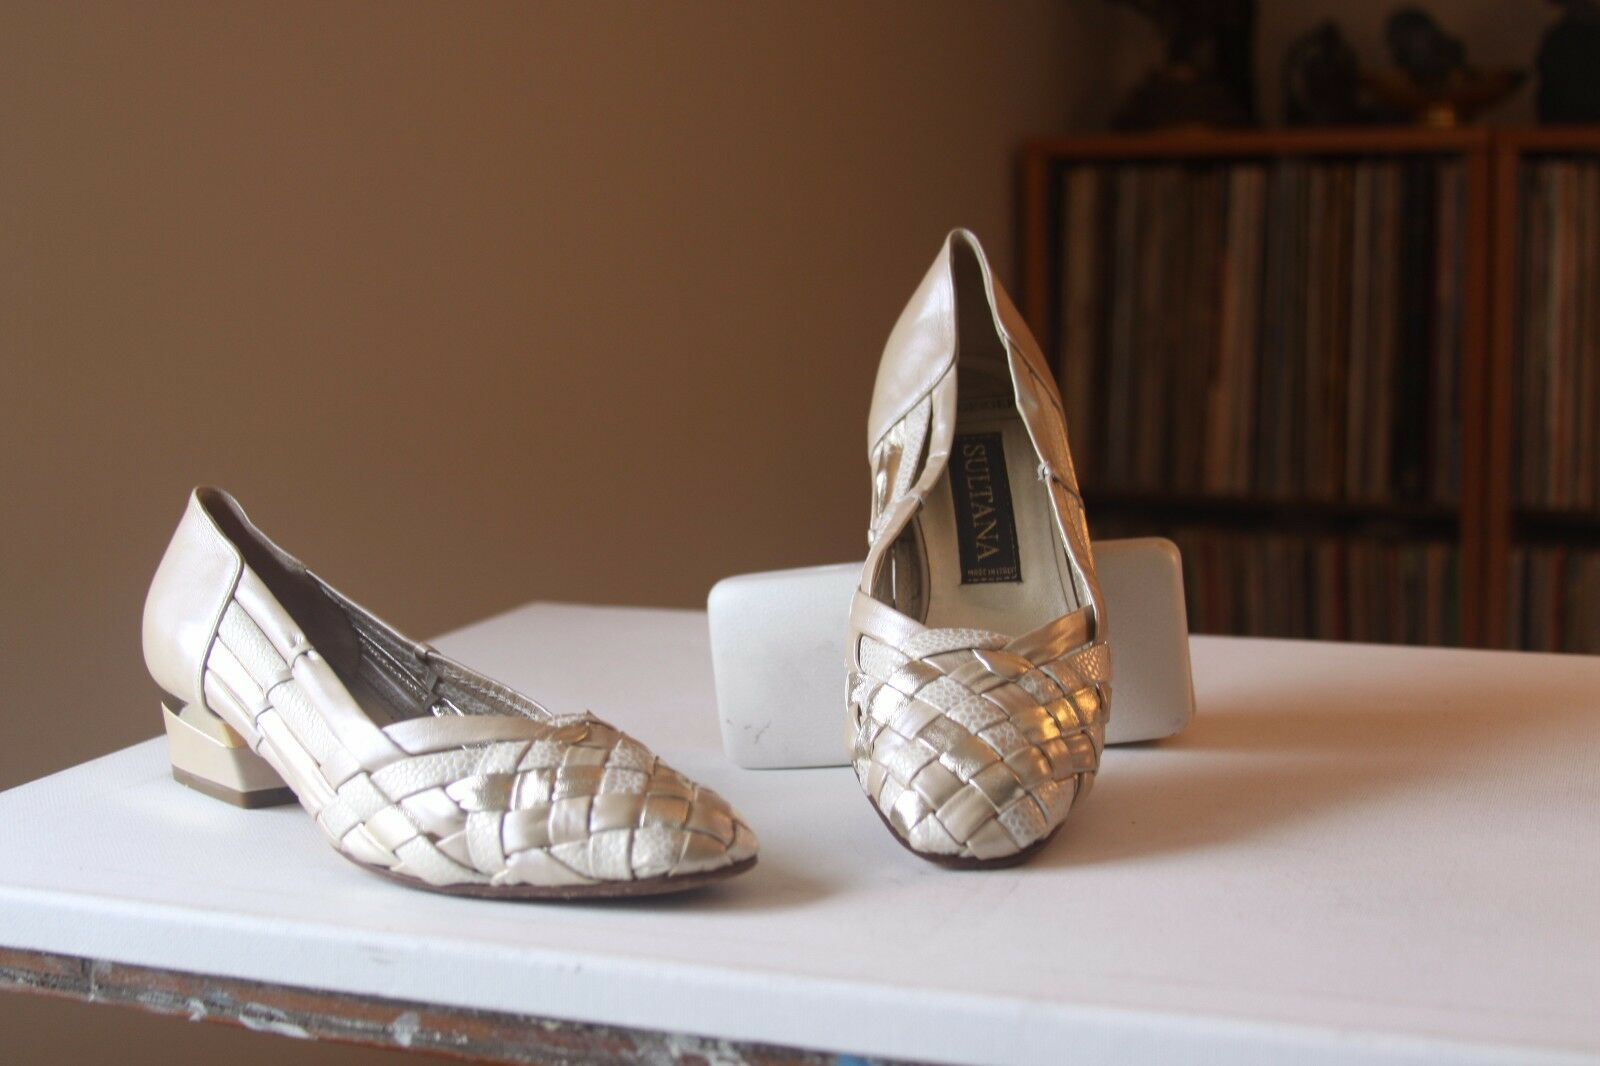 Kurt Geiger Sultana Nude Gold Woven Leather Leather Leather 1 1 4 Inch Heel Pumps Größe 37 b8c483